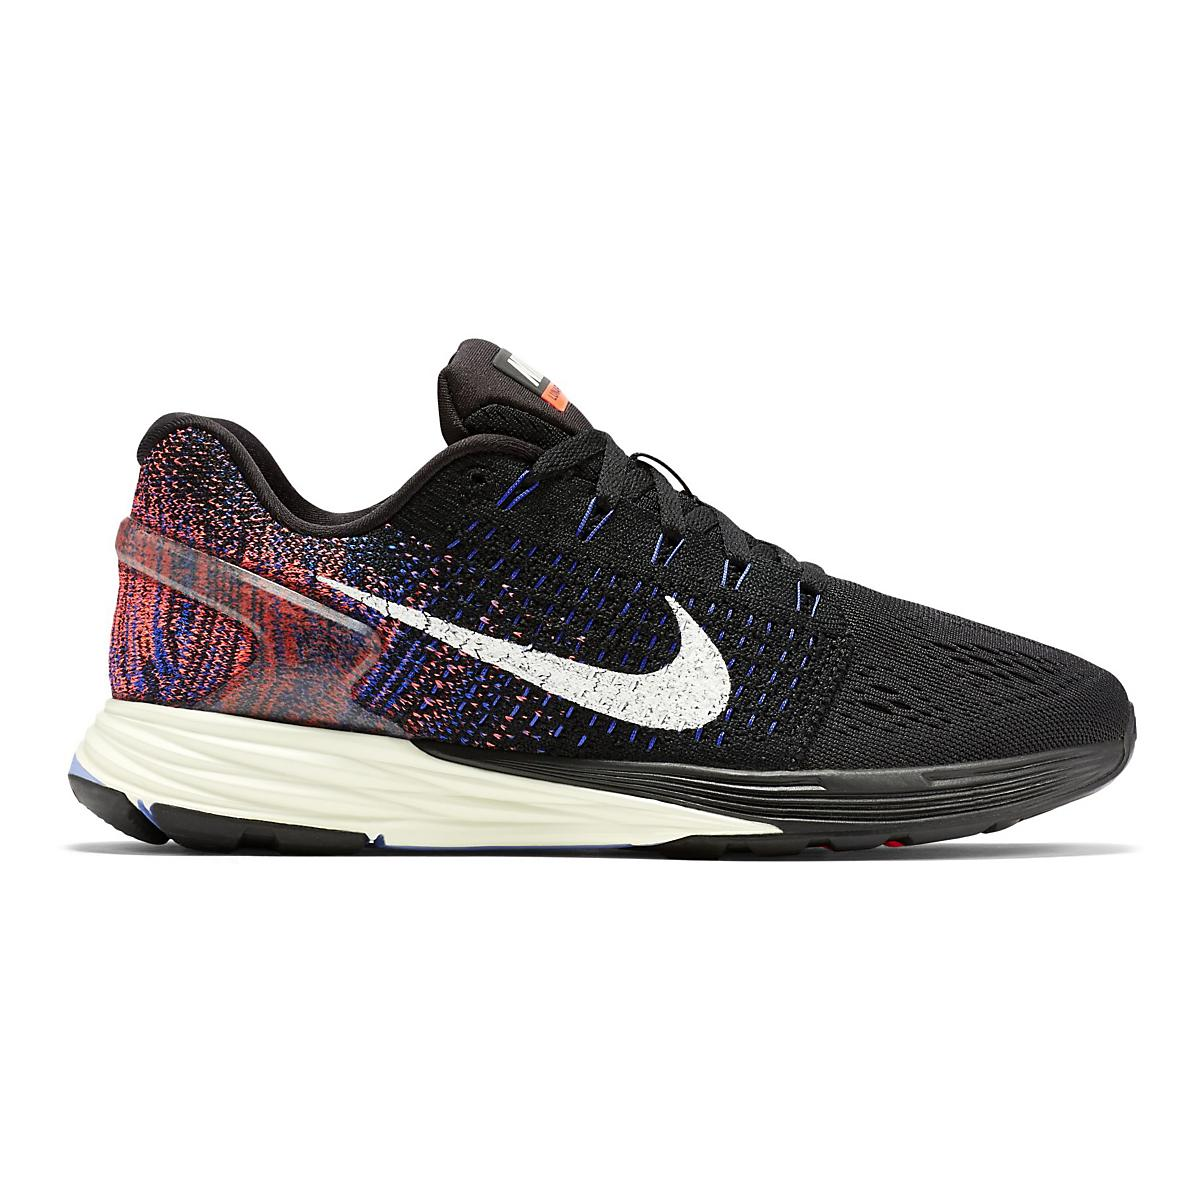 f1b64da3335 Womens Nike LunarGlide 7 Running Shoe at Road Runner Sports